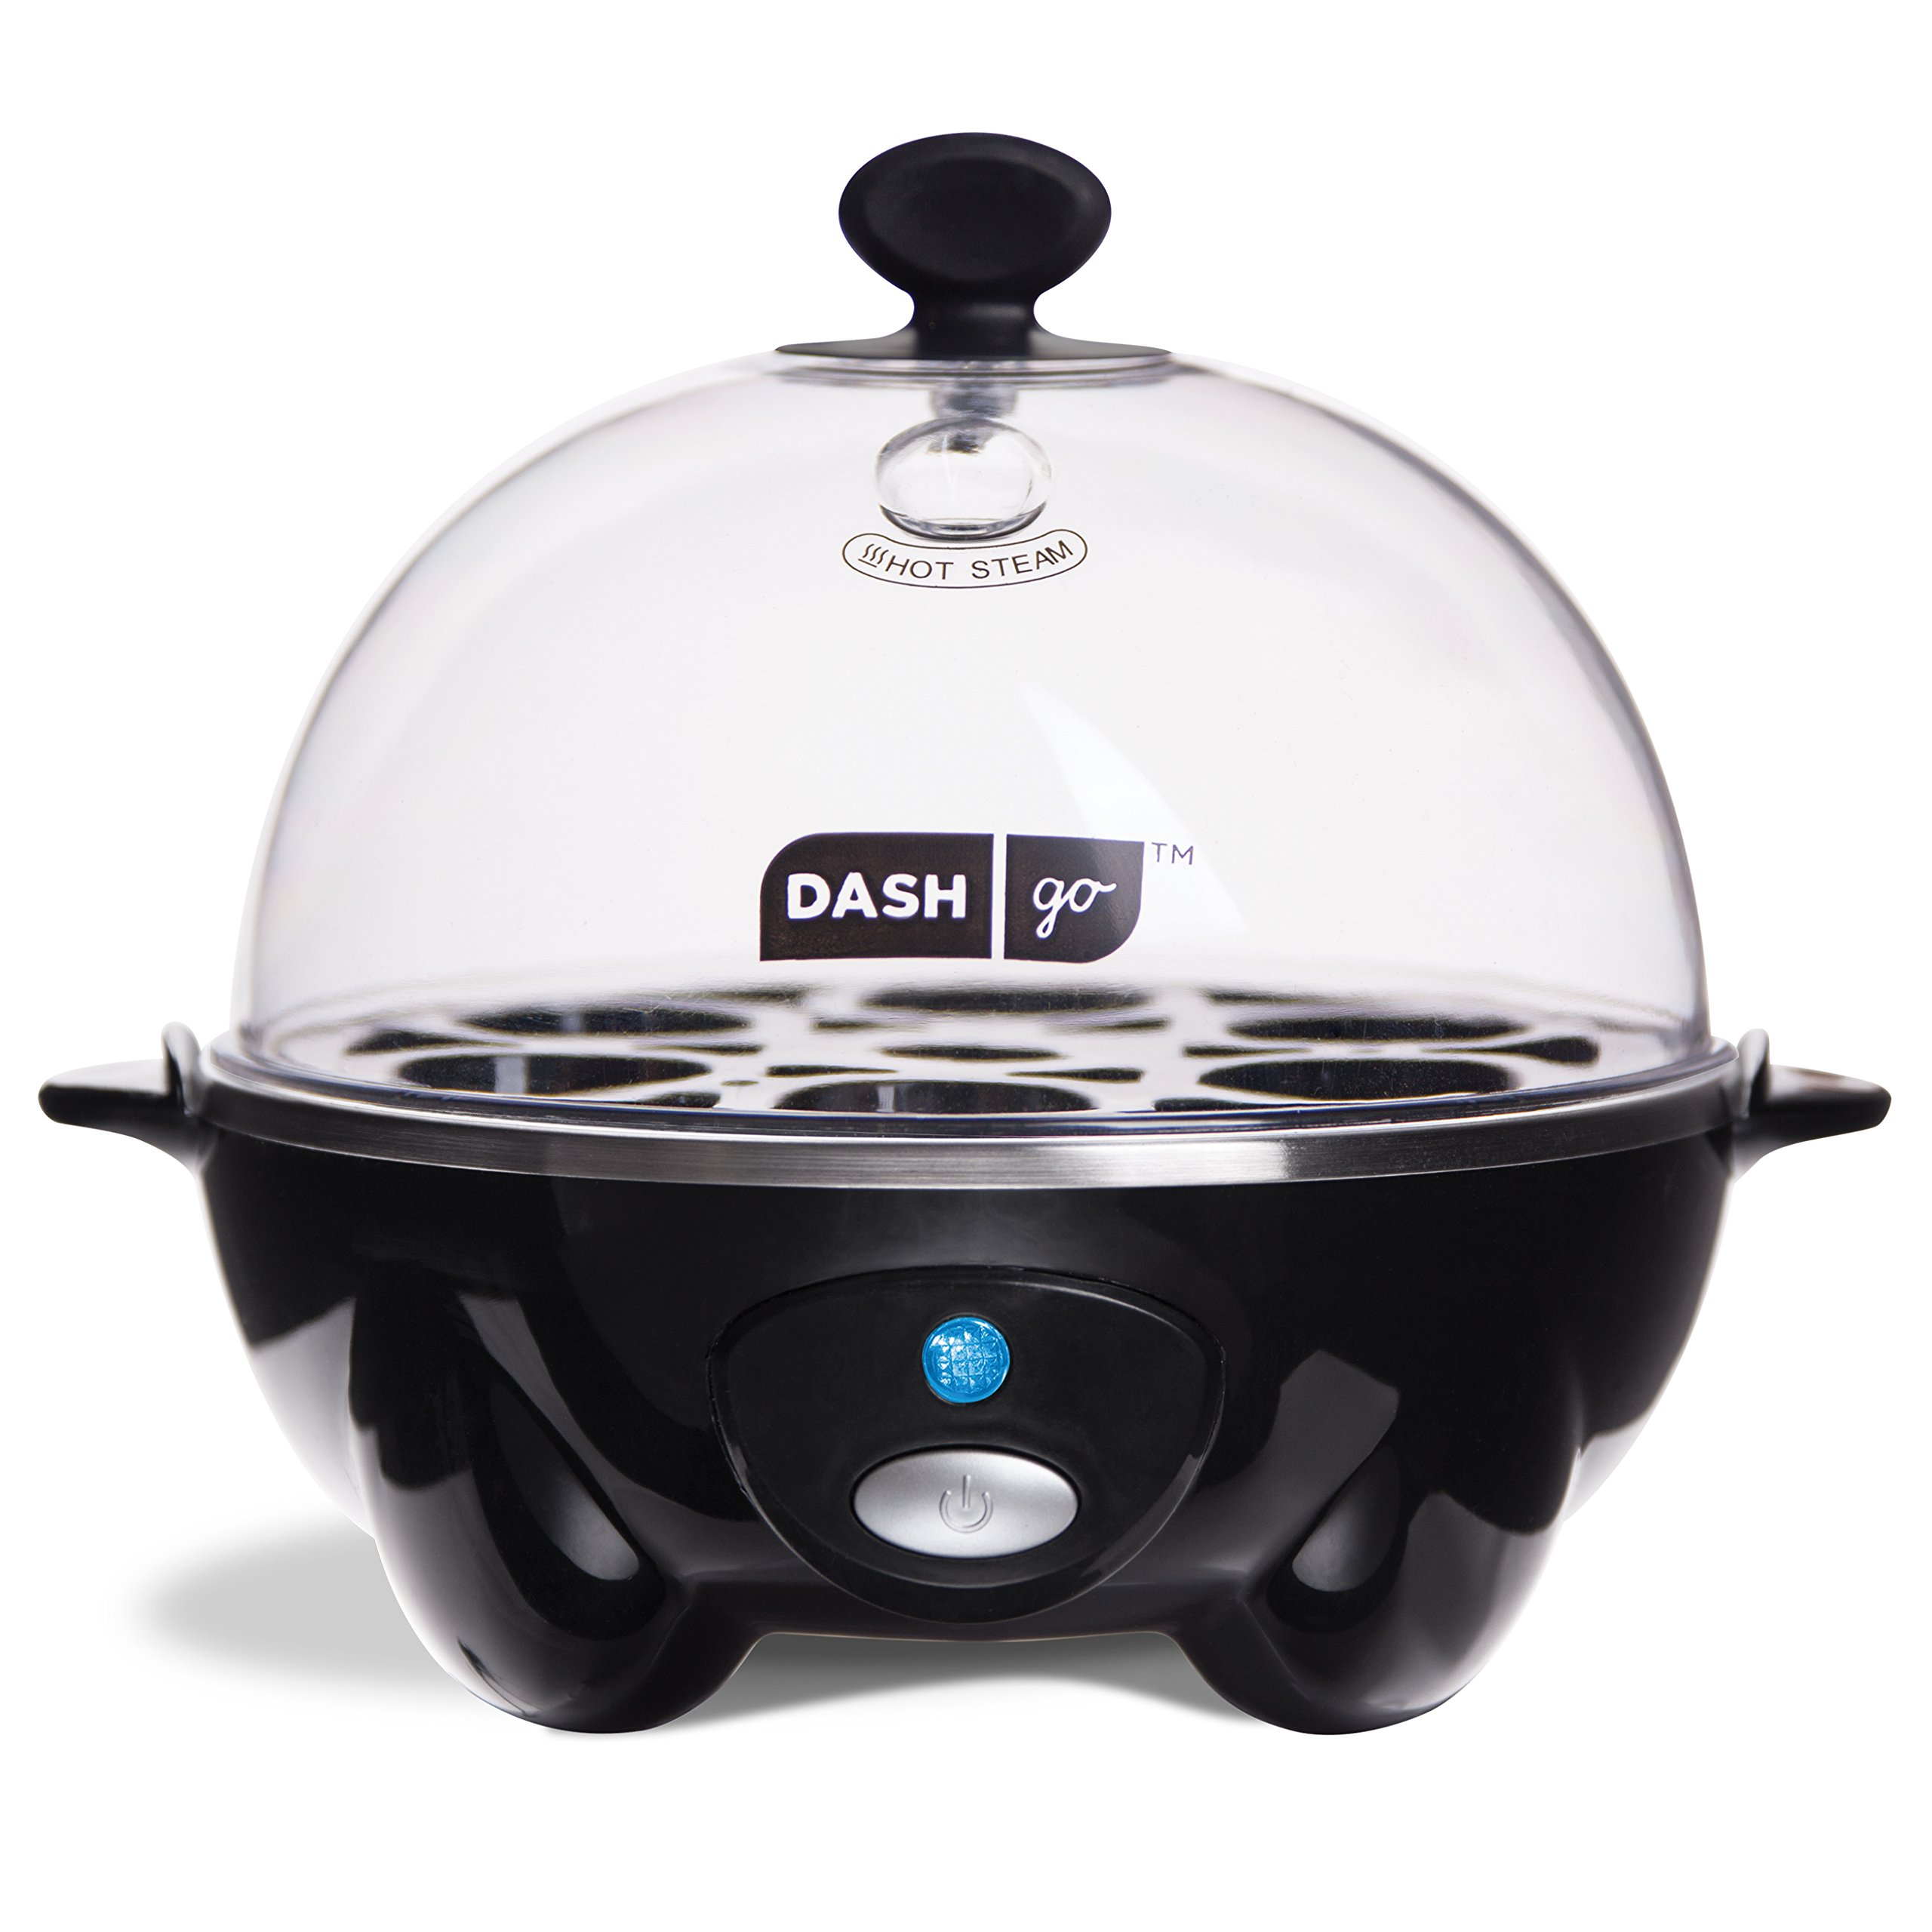 Dash Rapid Egg Cooker: 6 Egg Capacity Electric Egg Cooker for Hard Boiled Eggs, Poached Eggs, Scrambled Eggs, or Omelets with Auto Shut Off Feature - Black by Dash